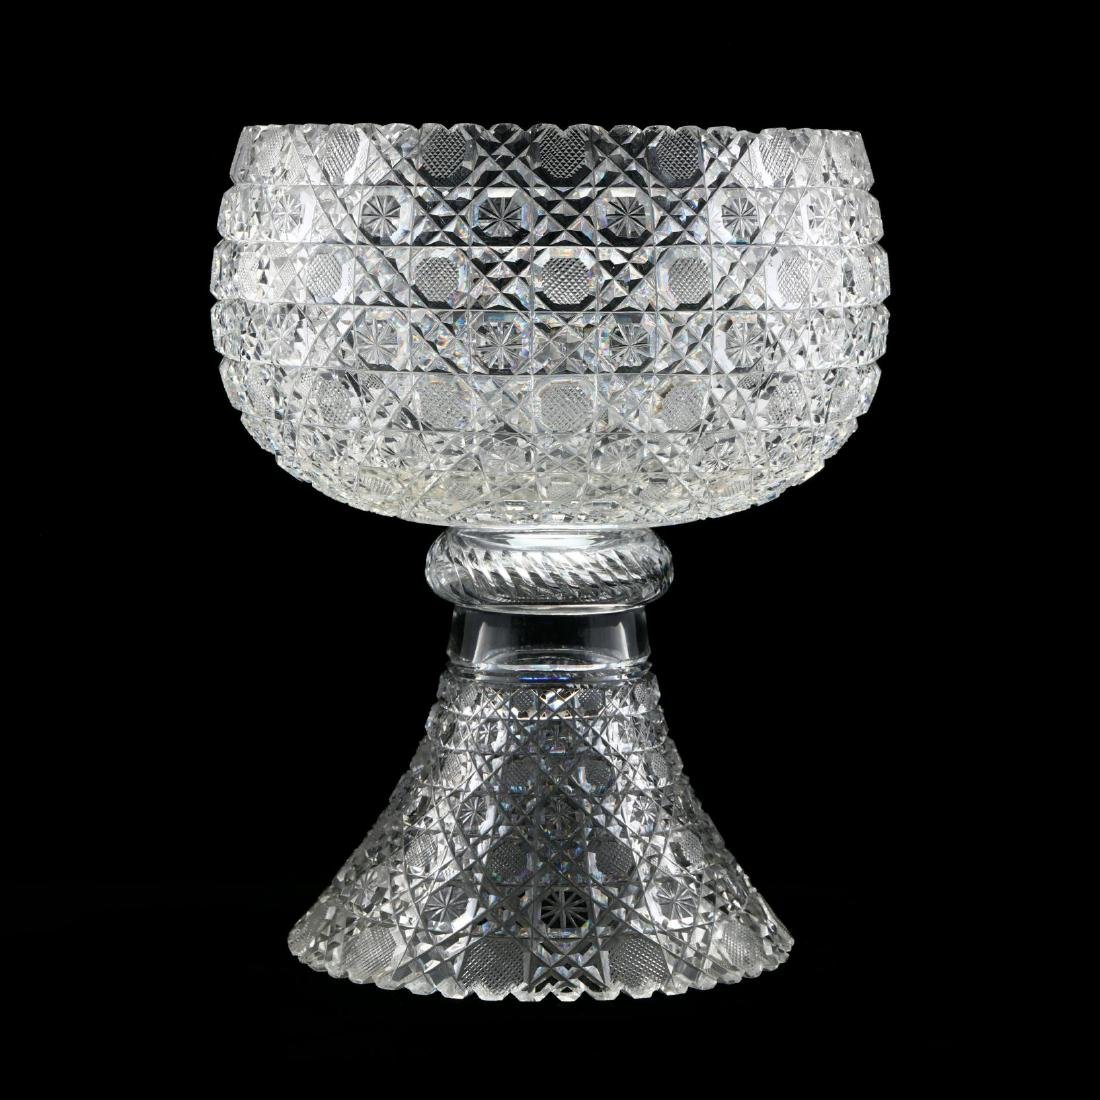 An American Brilliant Period Cut Glass Punch Bowl on